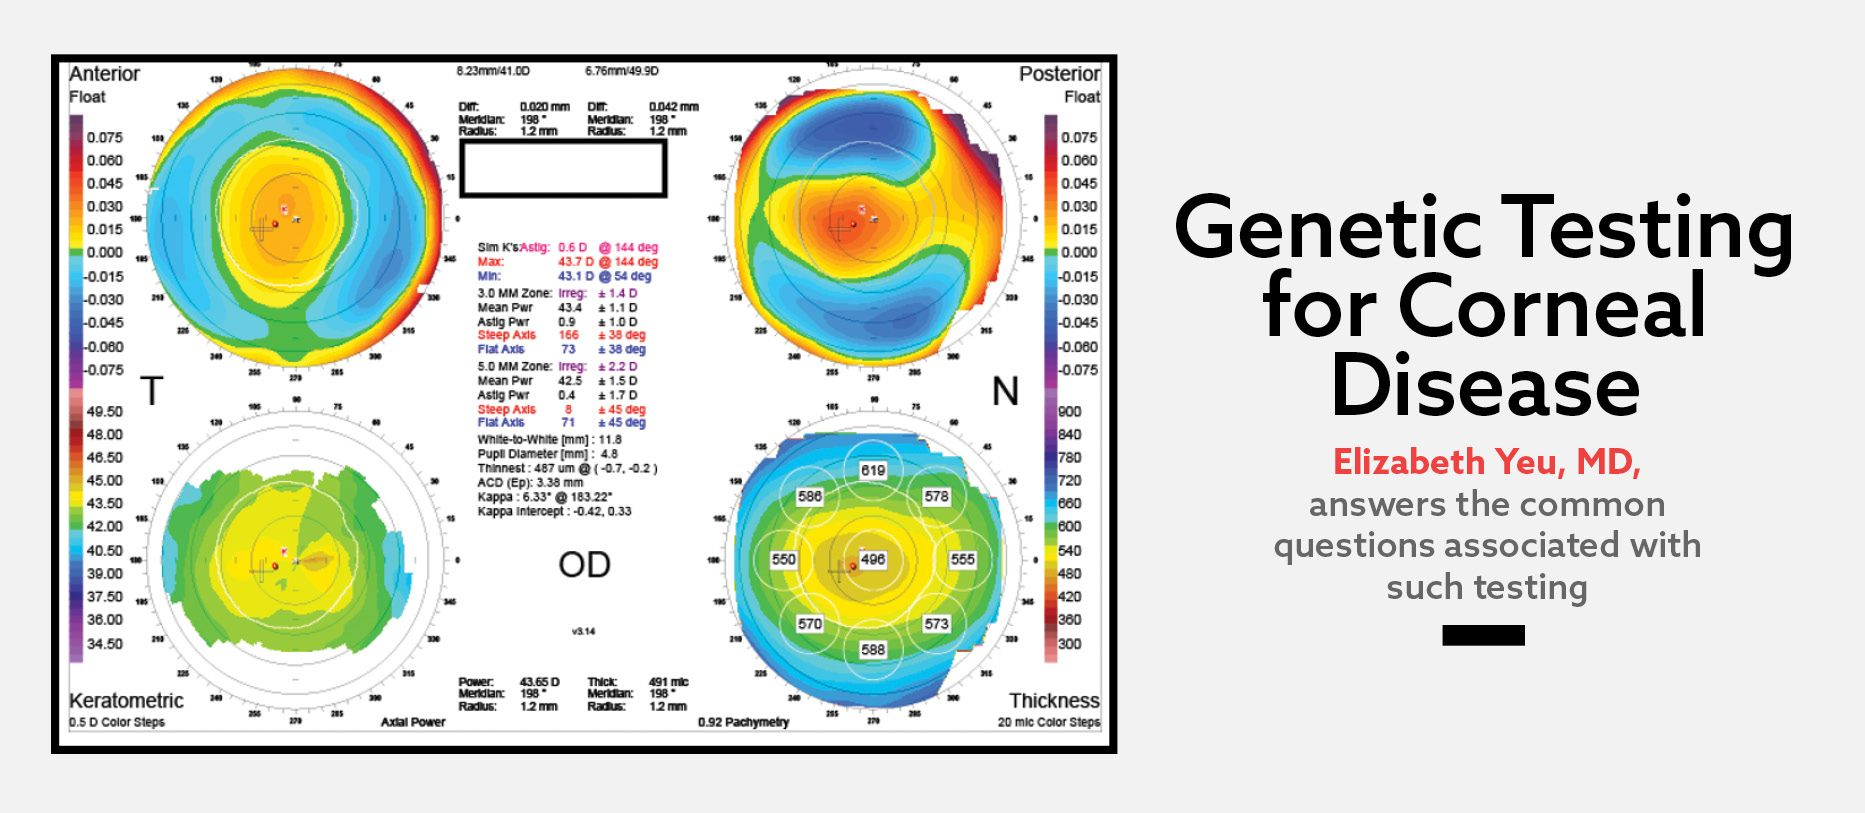 Genetic Testing for Corneal Disease